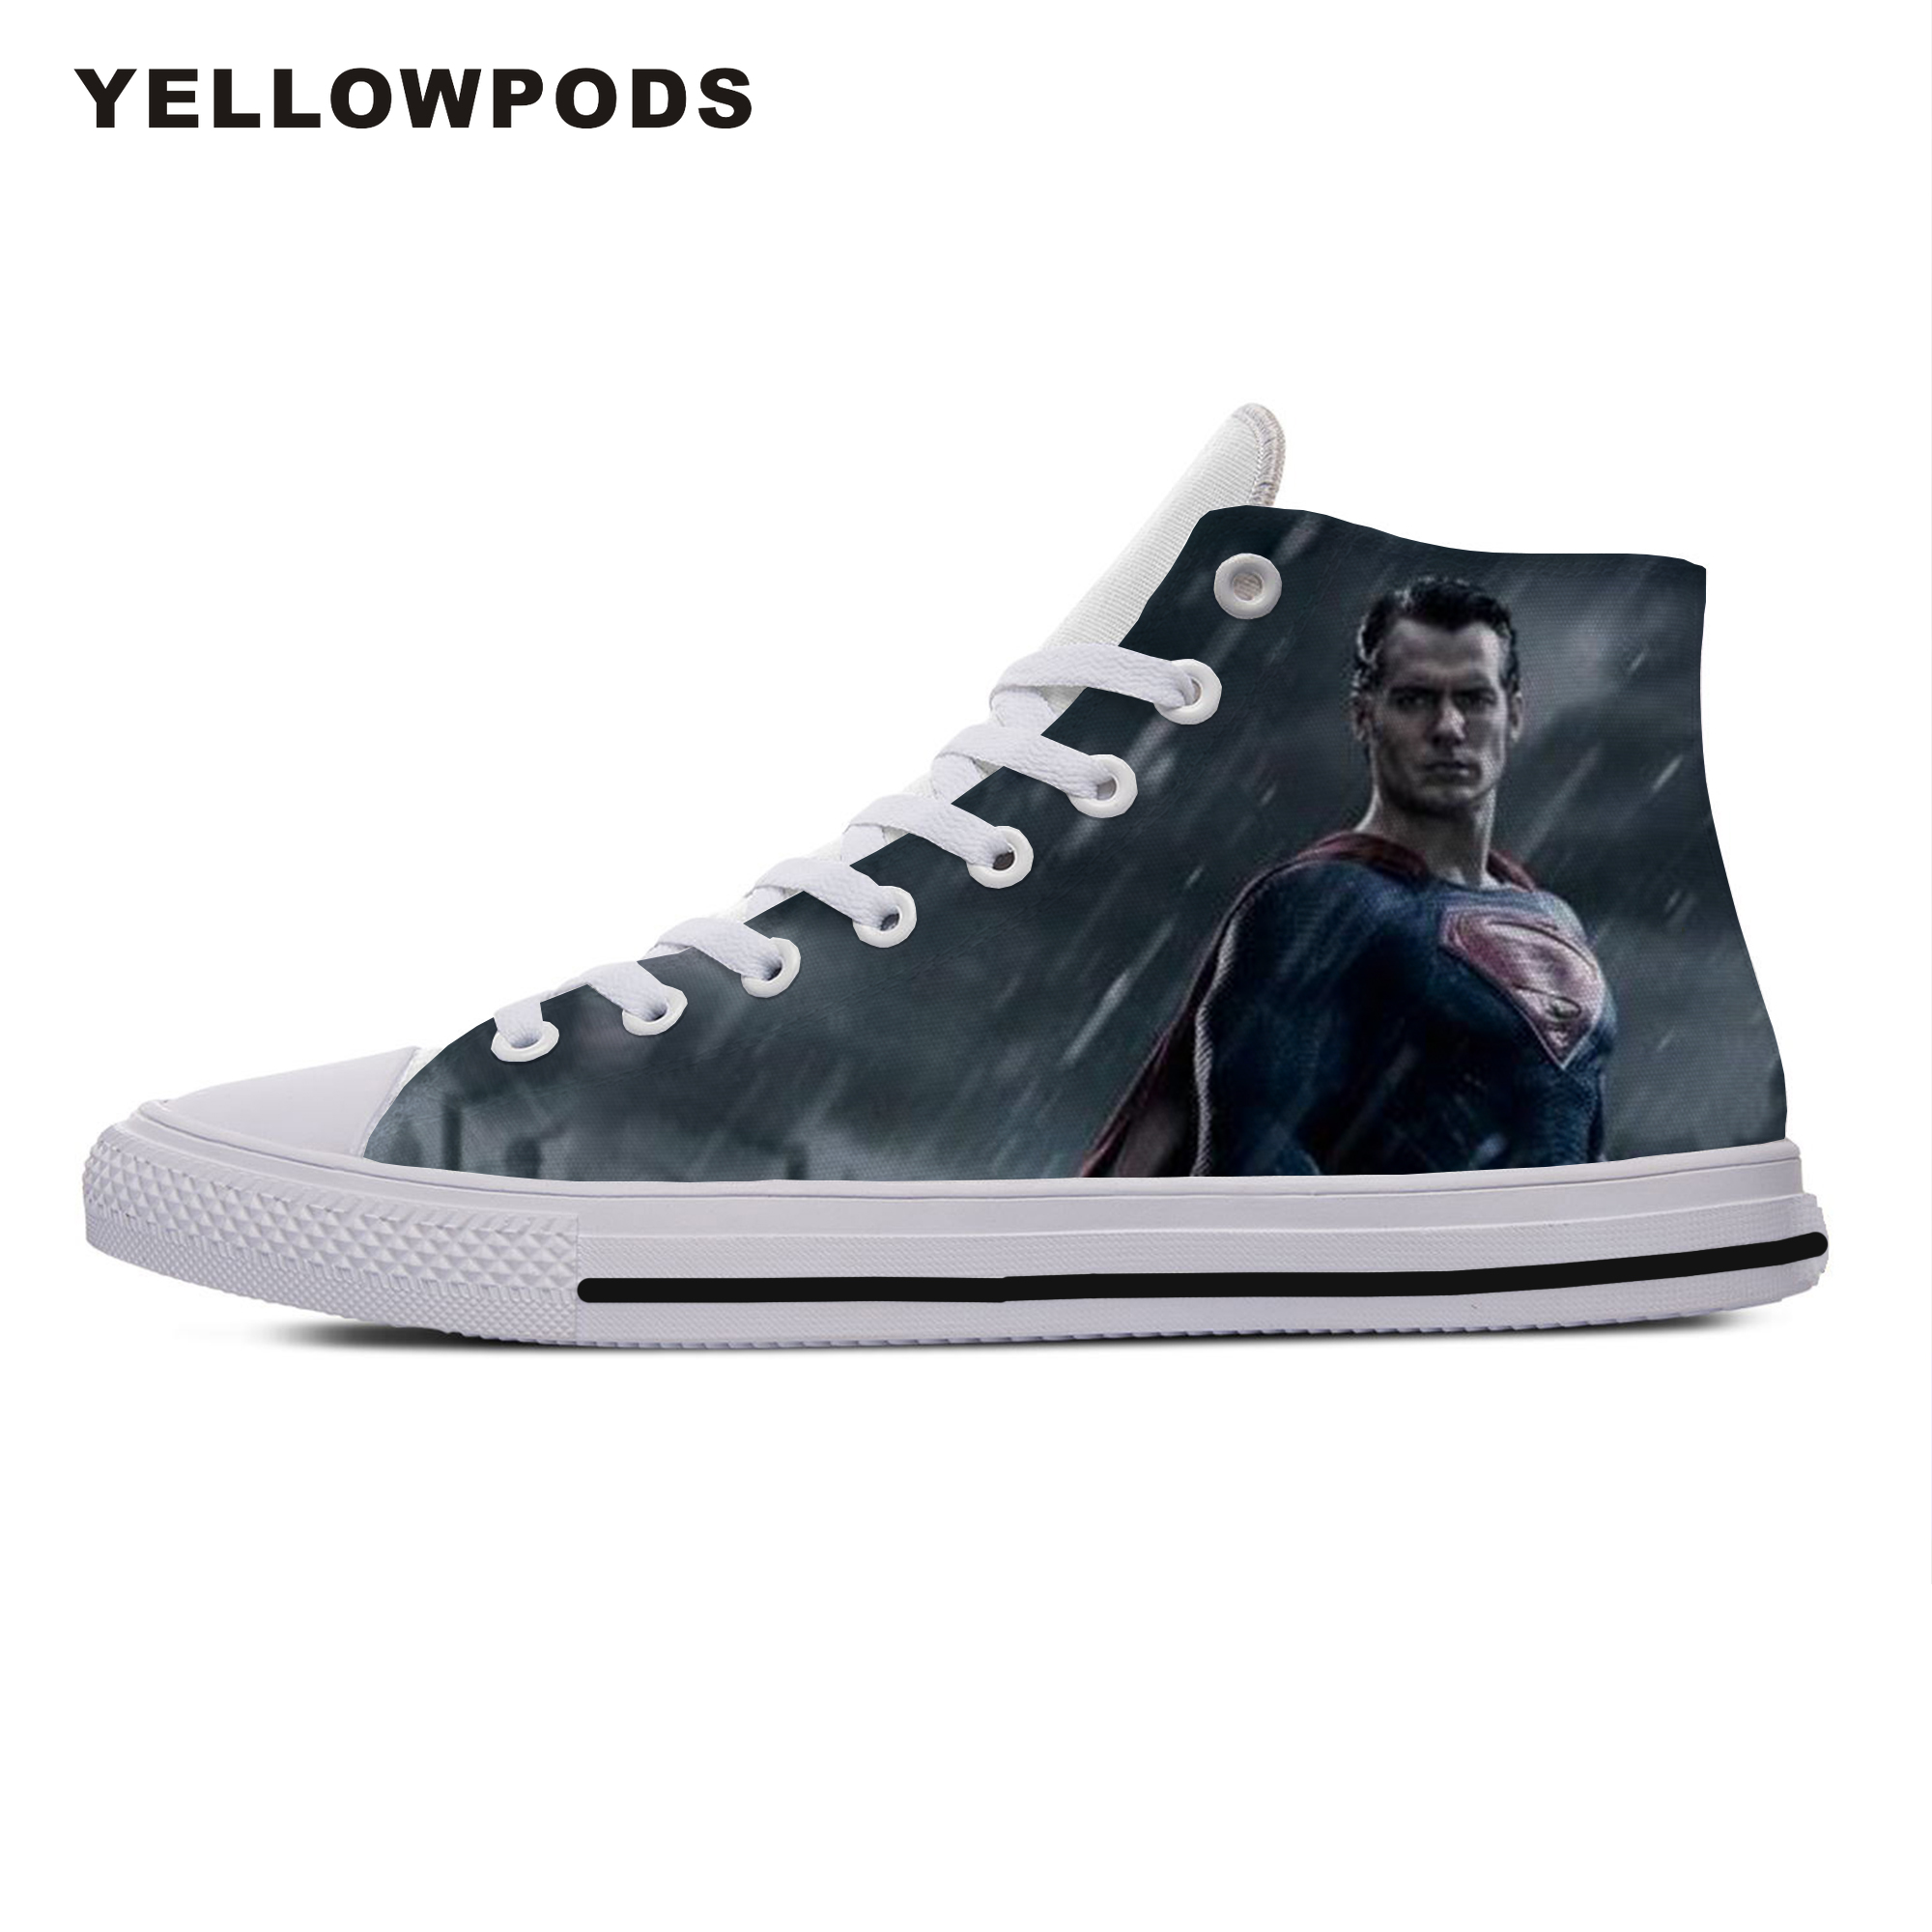 Personality Men's Casual Shoes Hot Cool Pop Funny High Quality Handiness Superman Man Of Steel Cute Cartoon Custom Shoes White